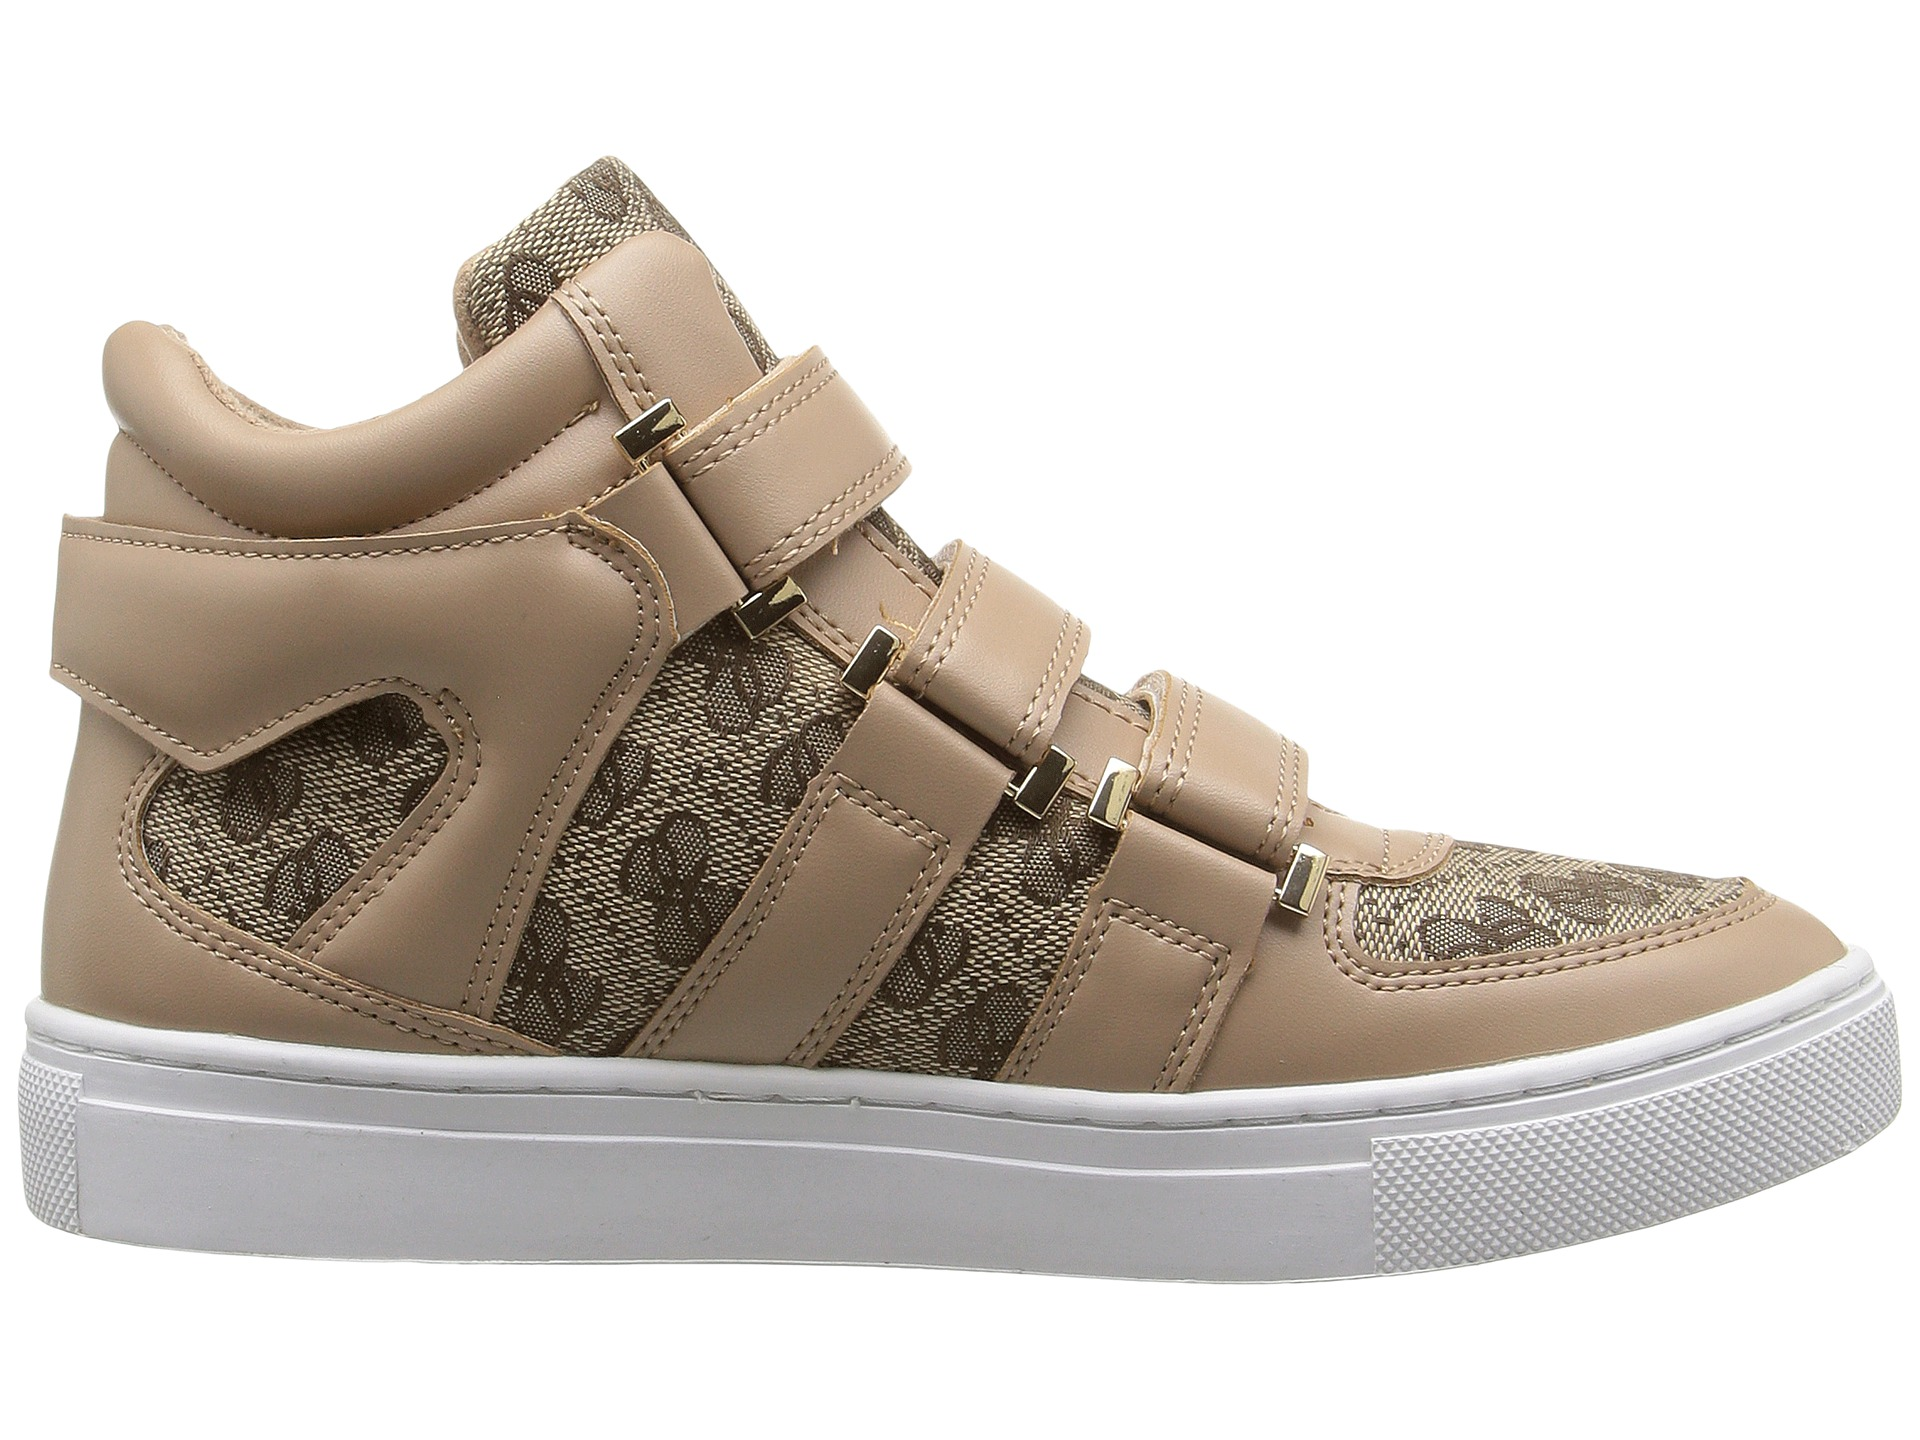 Find 6pm shoes from a vast selection of